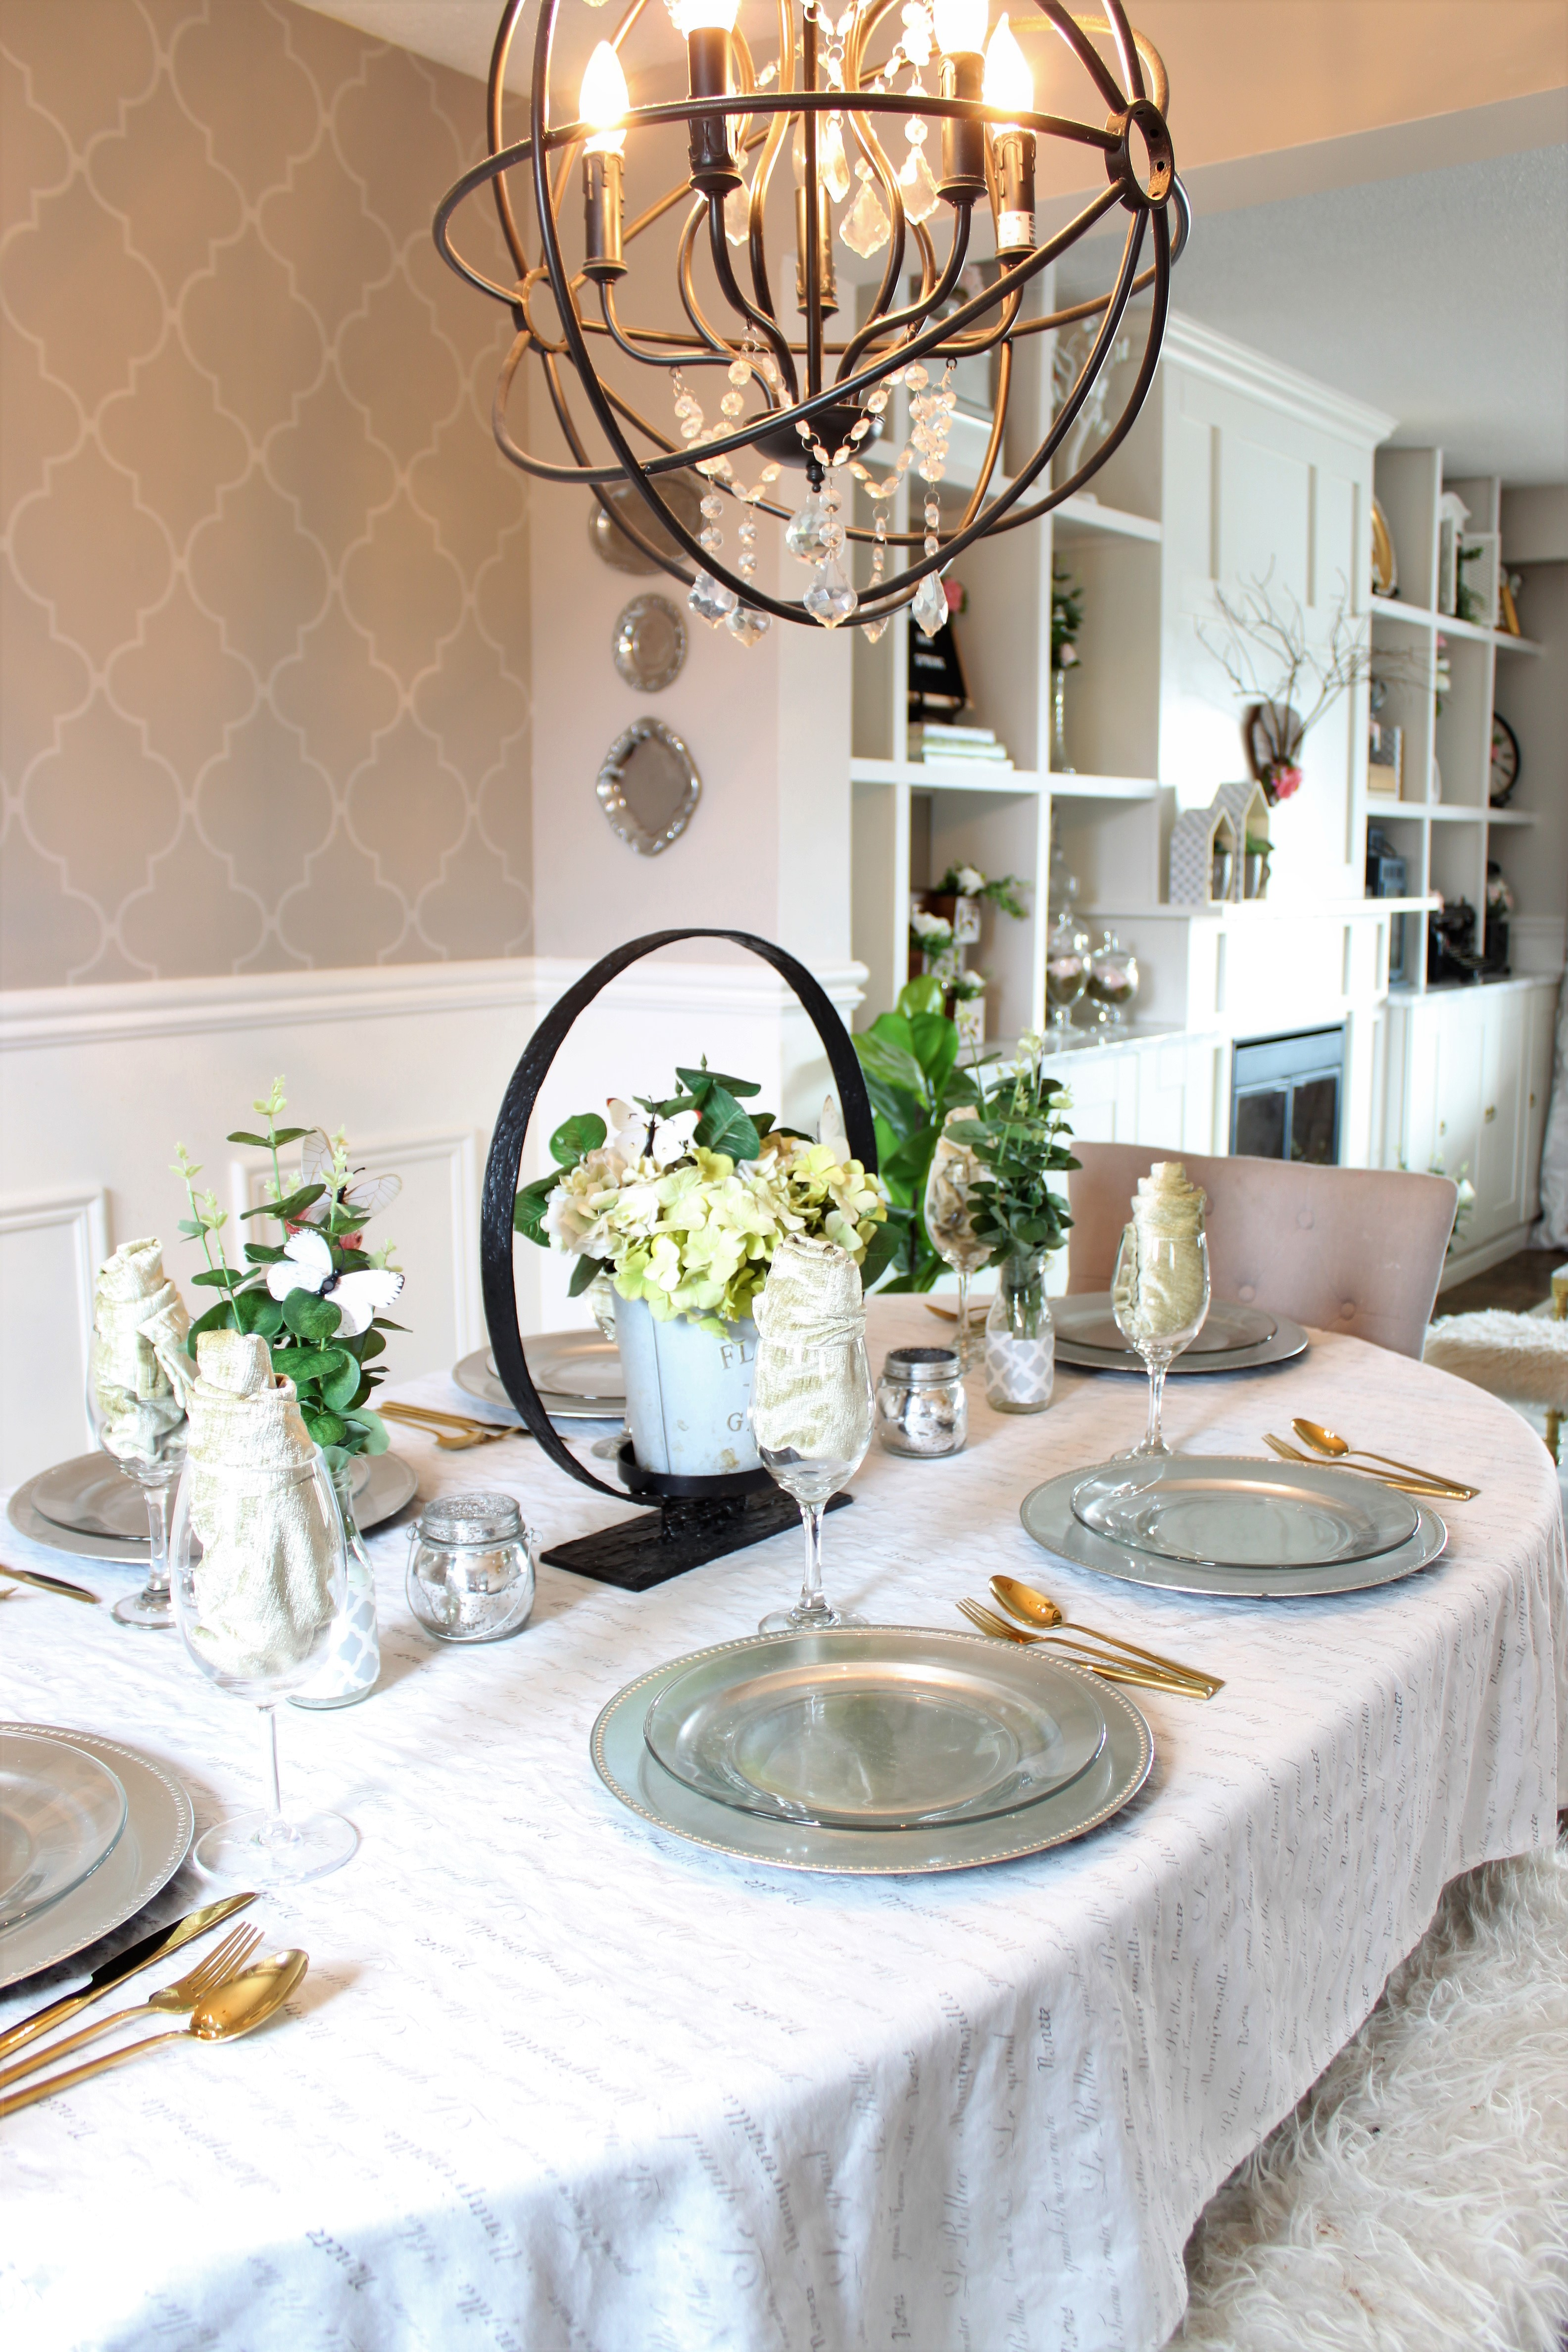 pring Has Sprung Home Tour using neutrals and faux flowers and greenery Dining Room